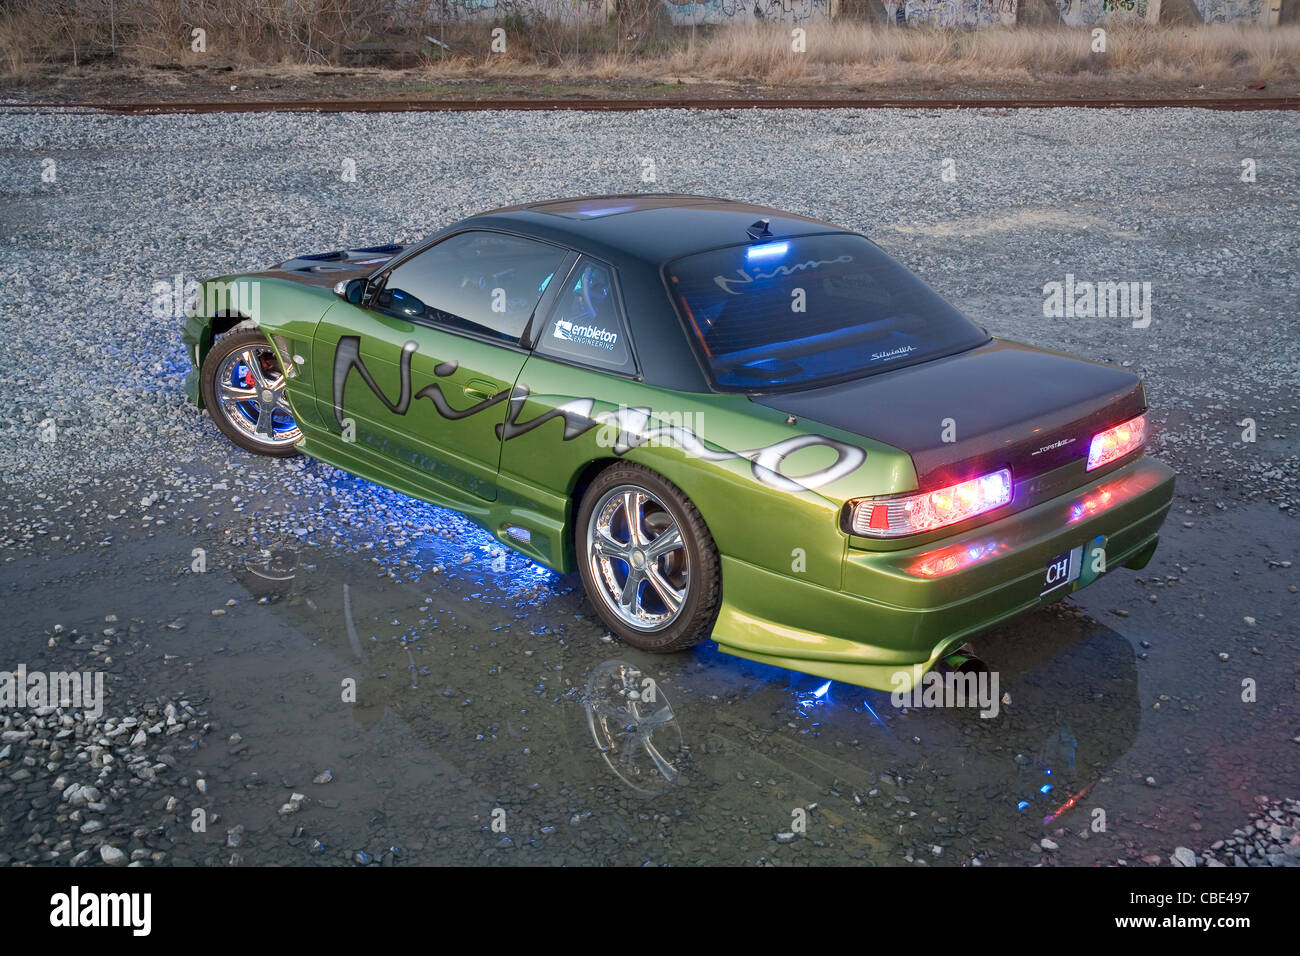 Boy Racer Car Customised Stock Photos Boy Racer Car Customised